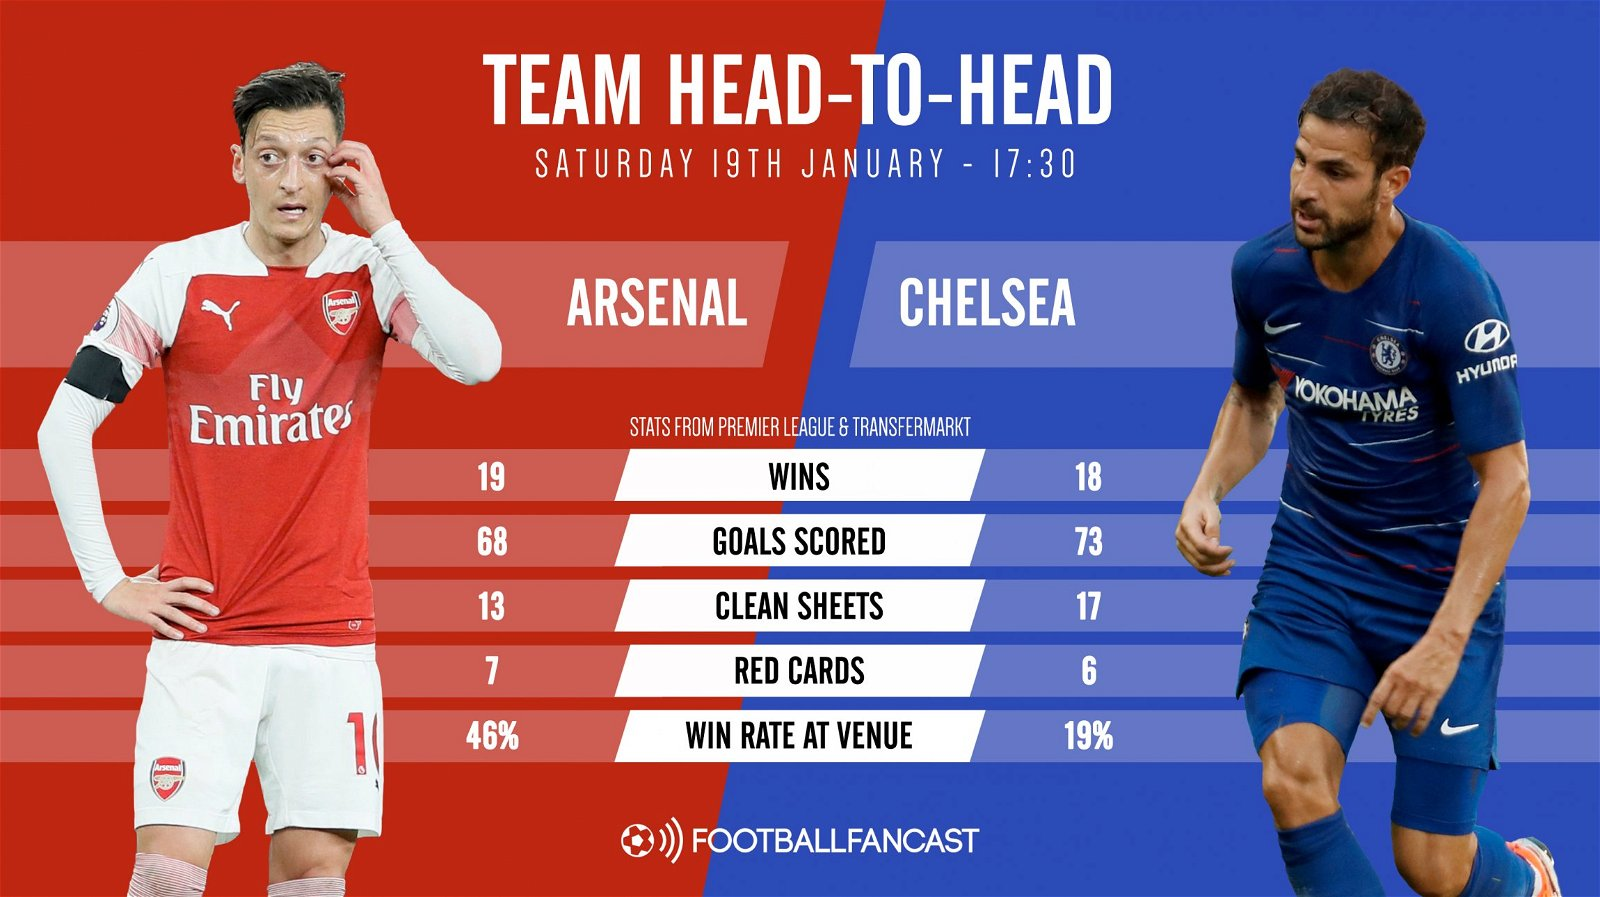 Arsenal vs Chelsea Team Head to Head graphic - Fan Predictions: Arsenal vs Chelsea